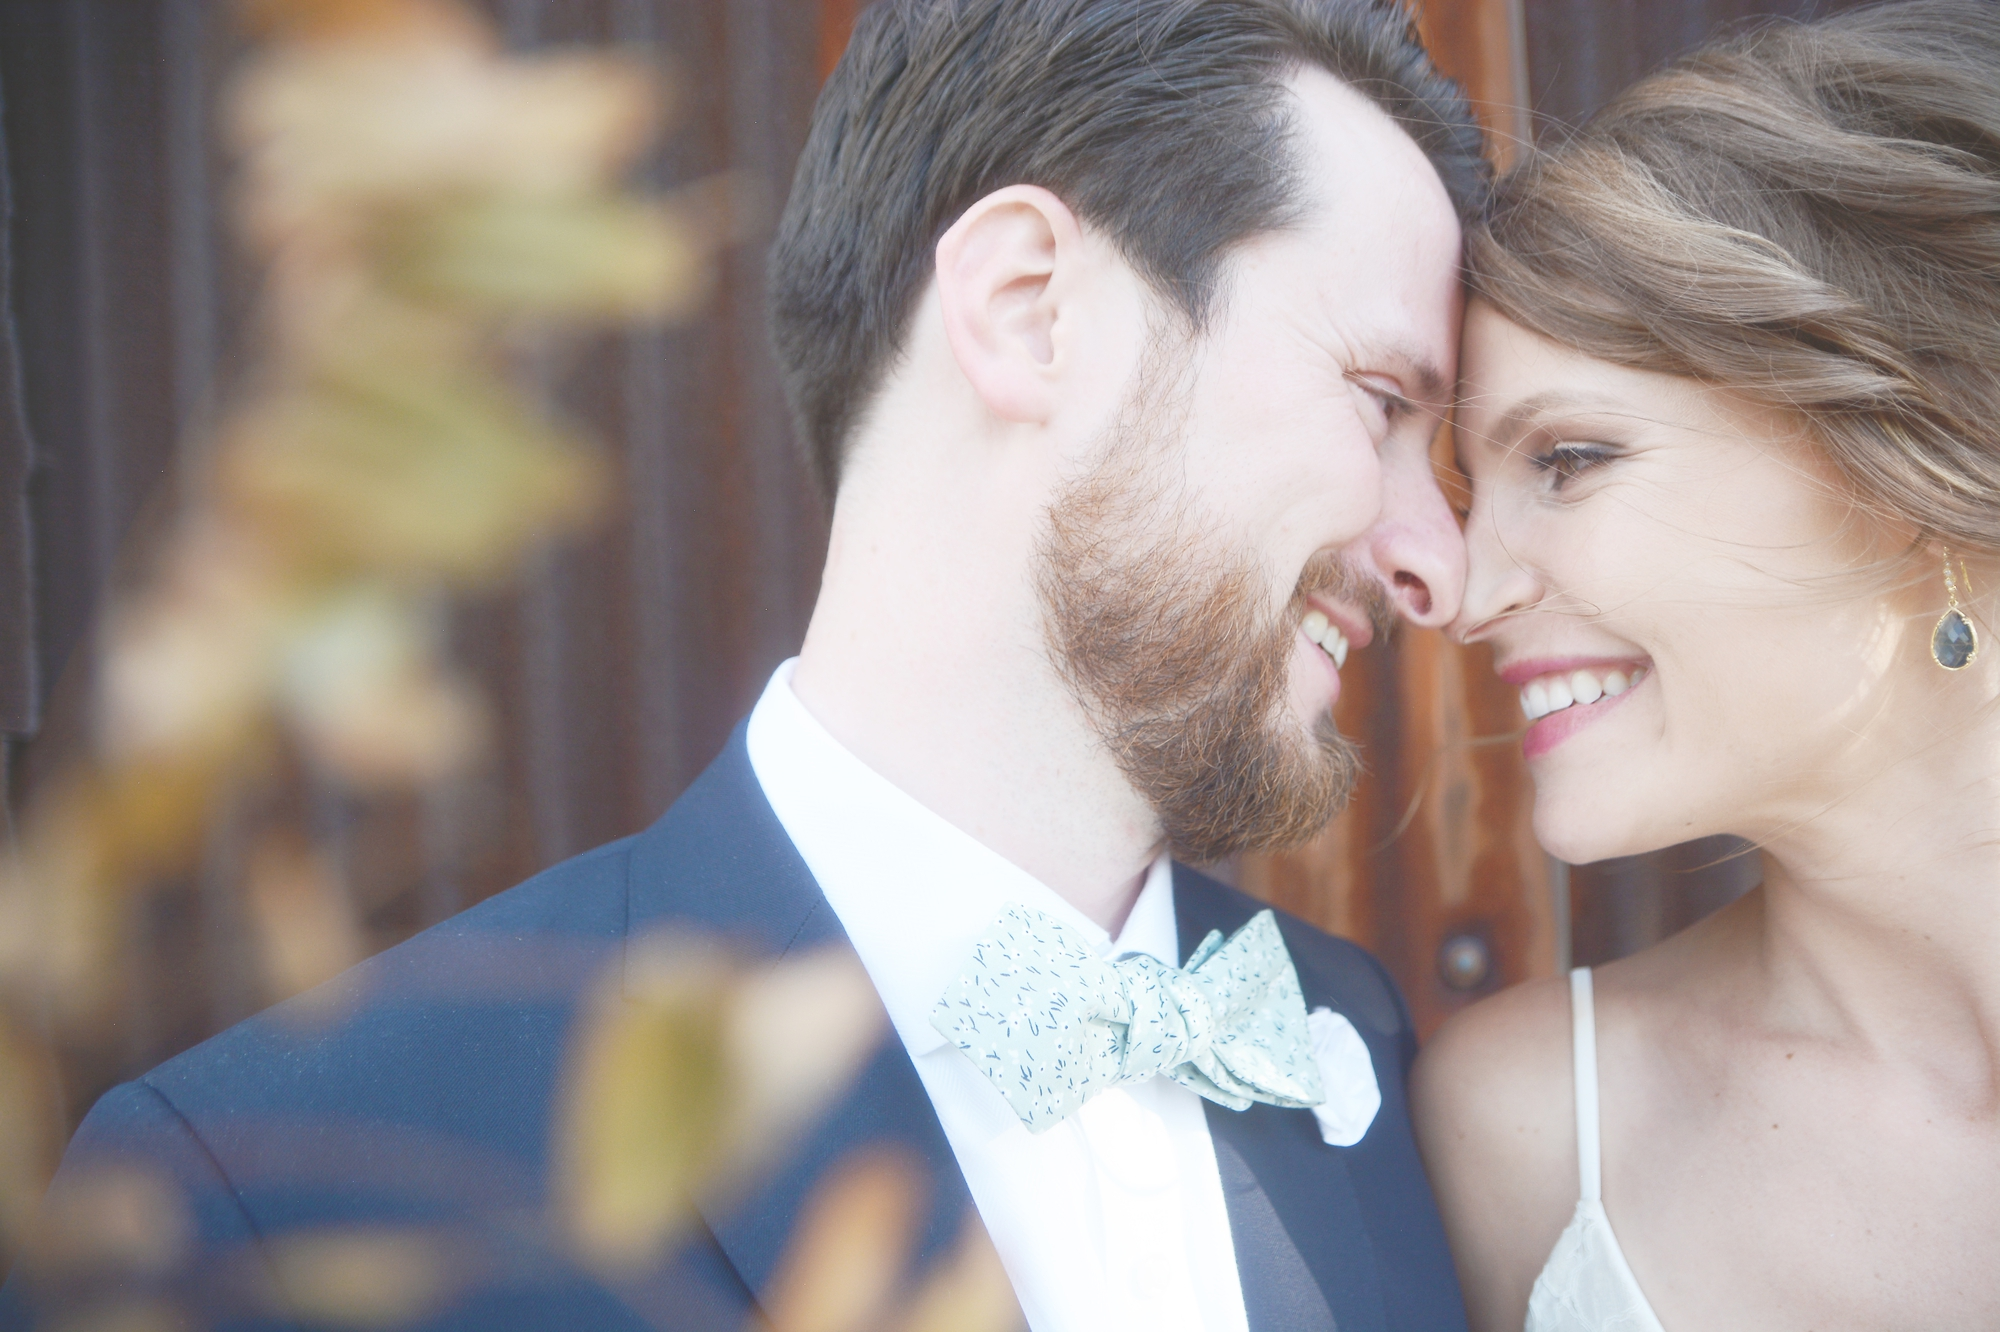 Wedding at Ovation Chicago - Six Hearts Photography023